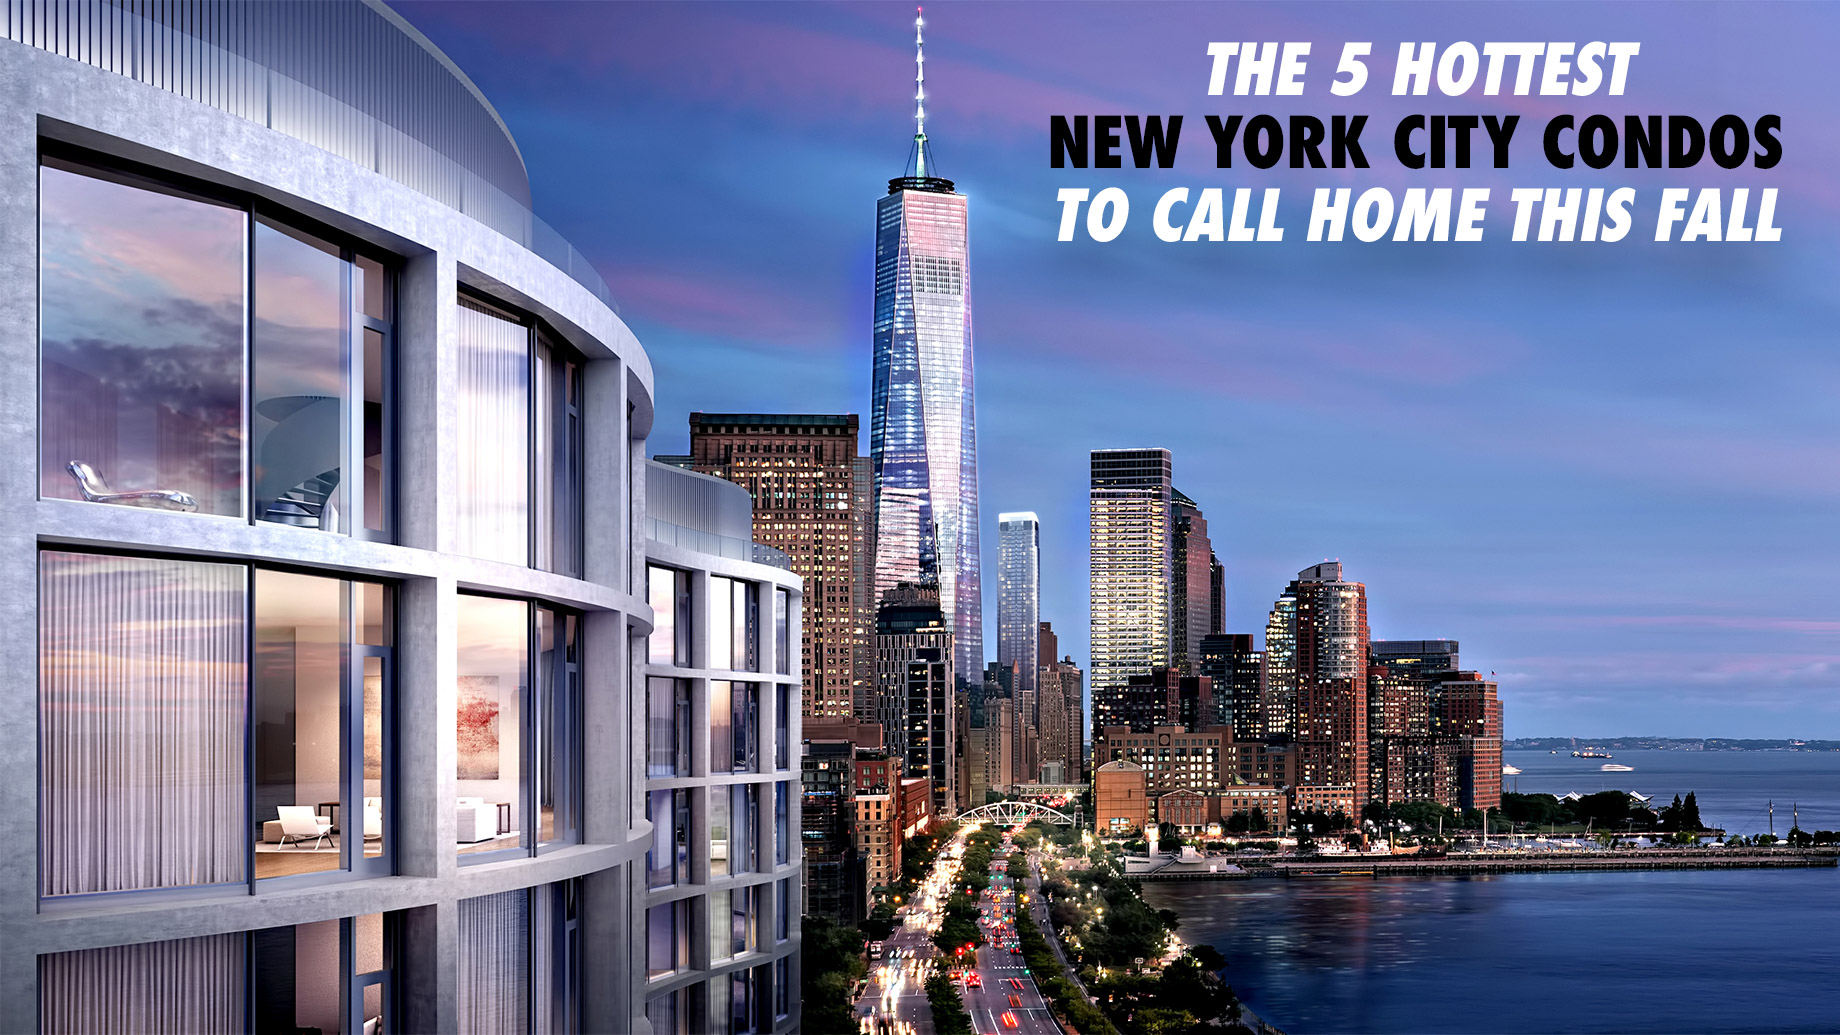 The 5 Hottest New York City Condos to Call Home This Fall